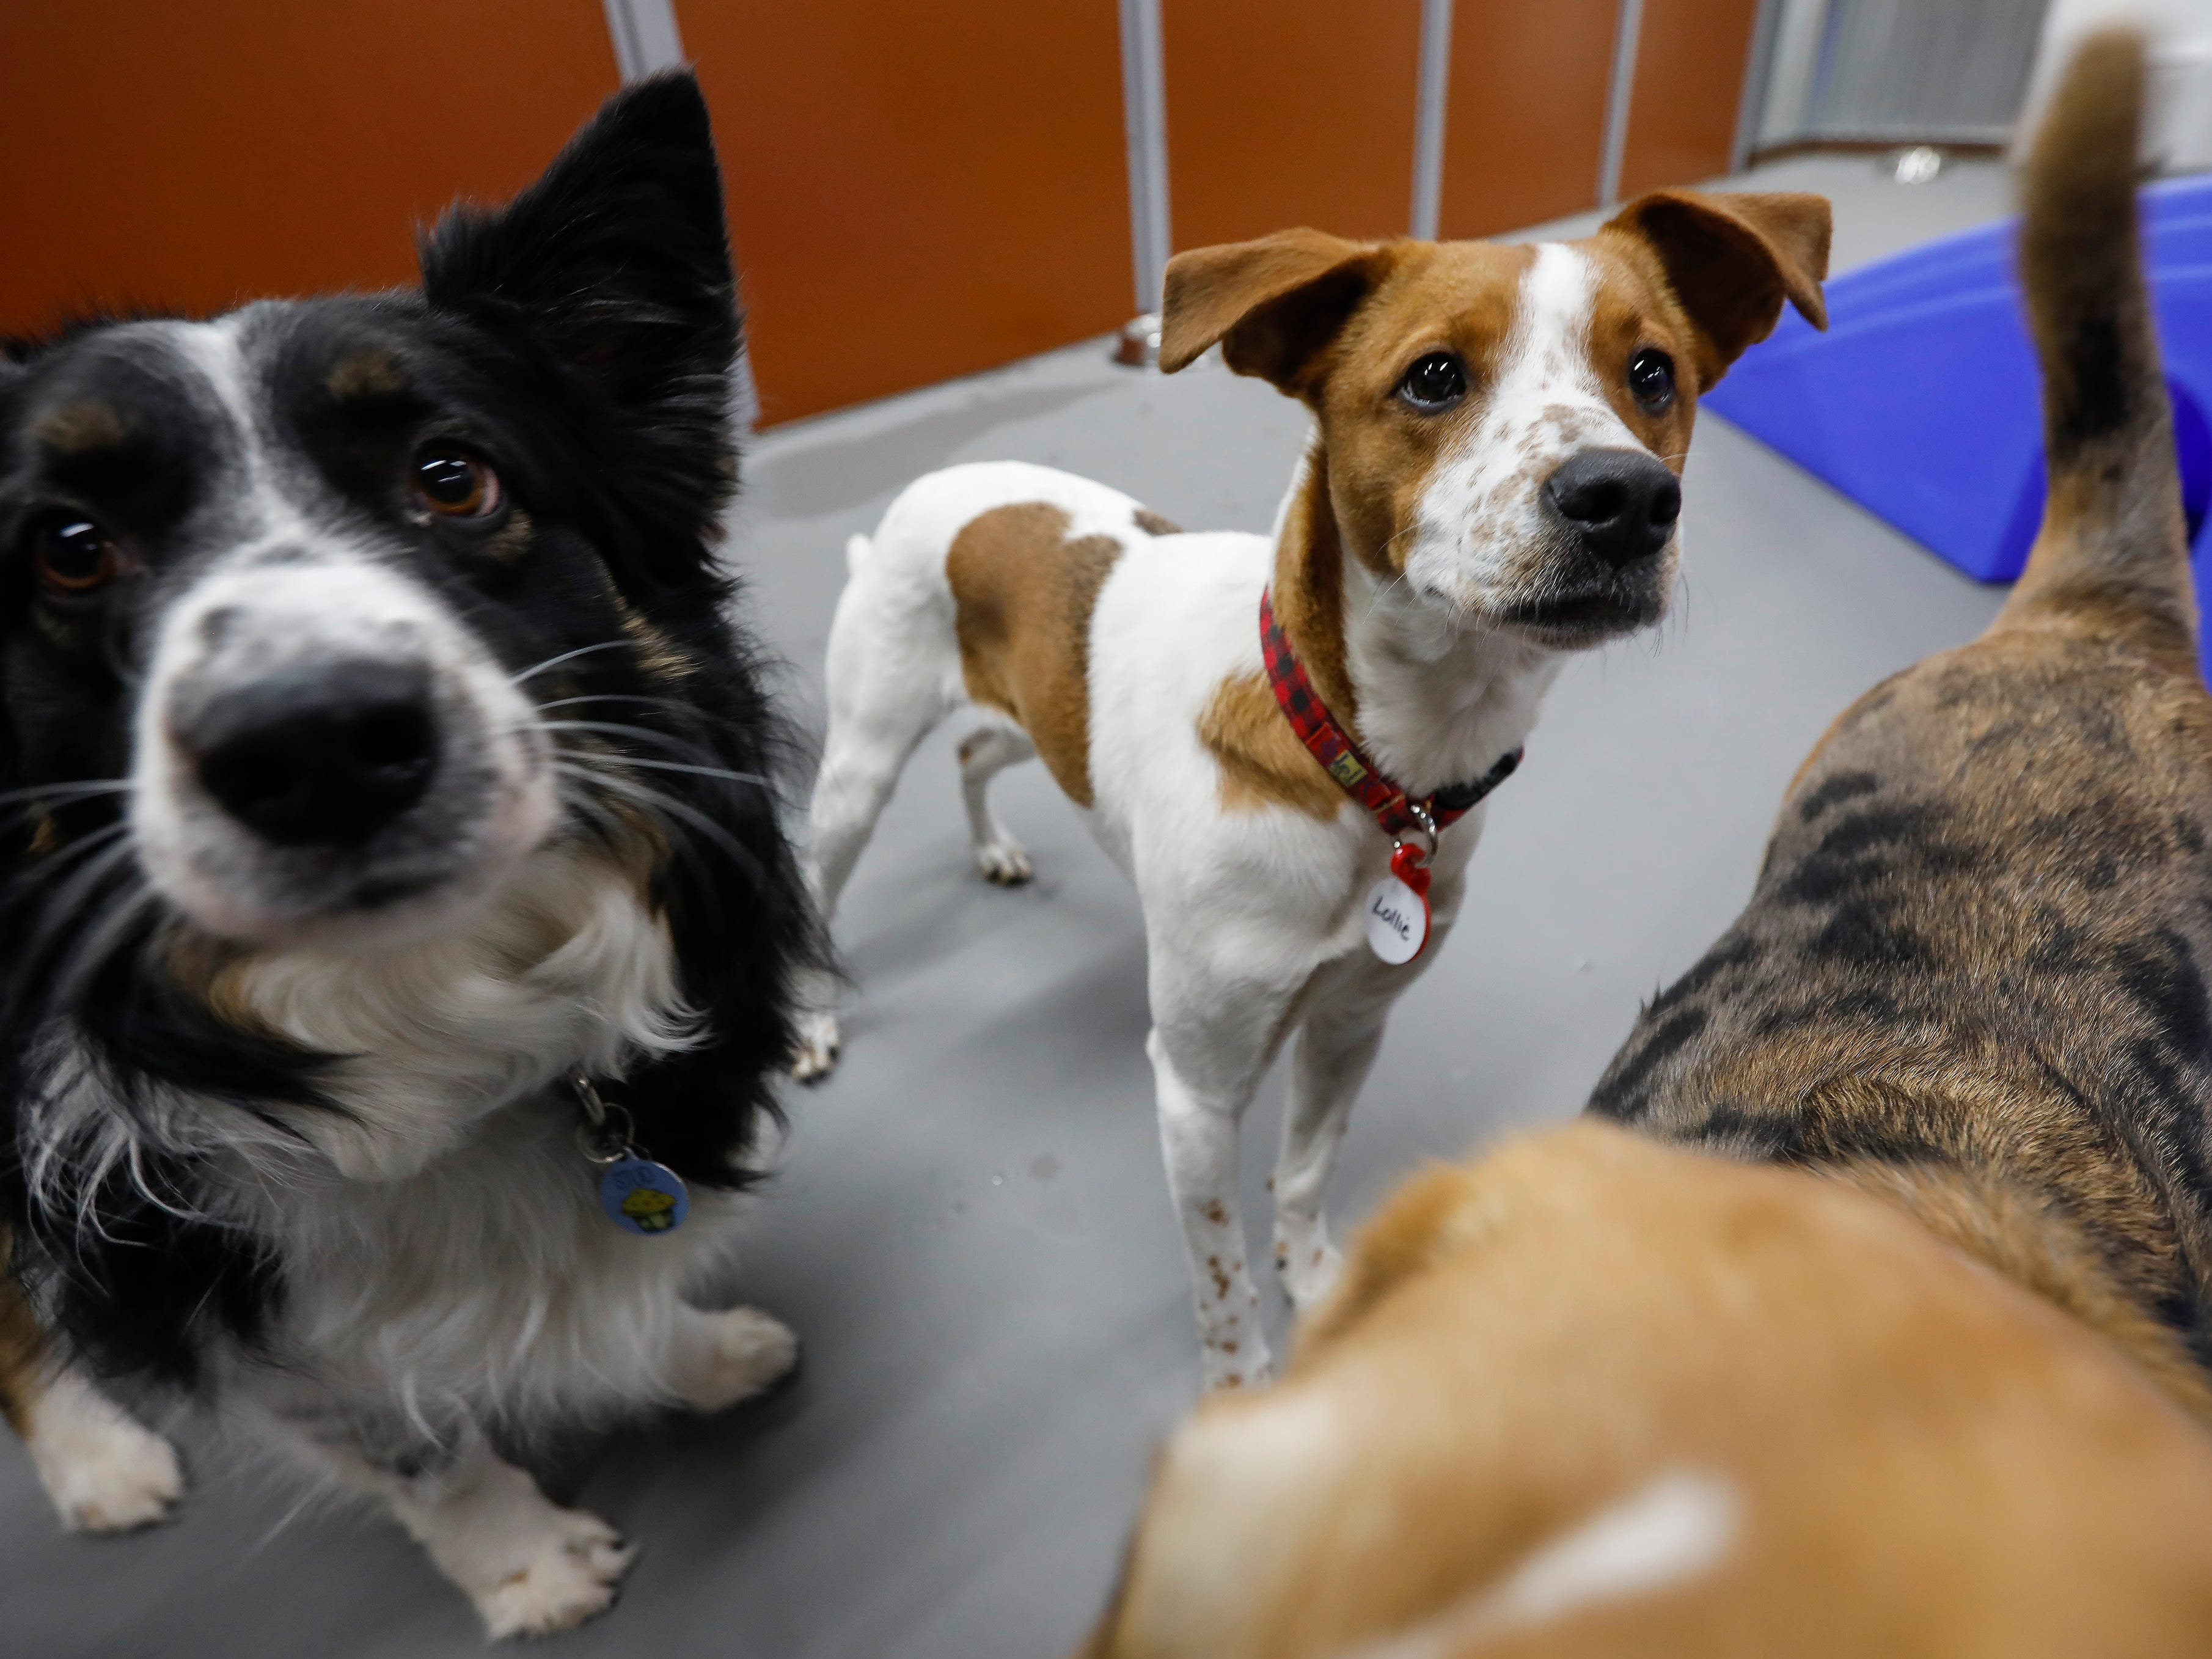 Hollie and other dogs socialize in the play area at the new Camp Bow Wow located at 2814 S. Fremont Ave., Suite 104.